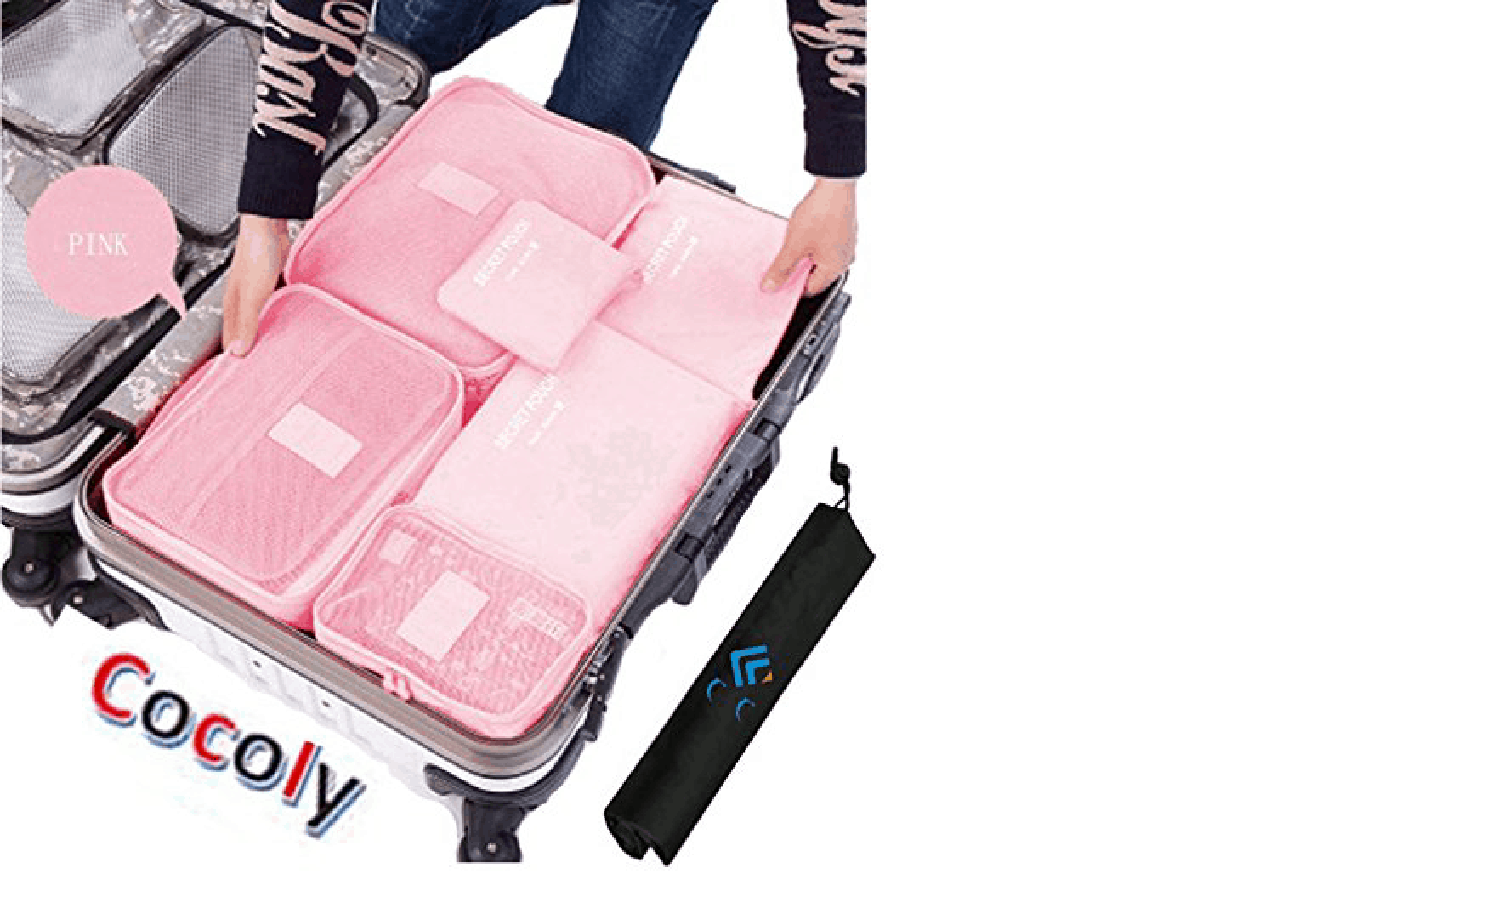 Cocoly Pink Packing Compartments